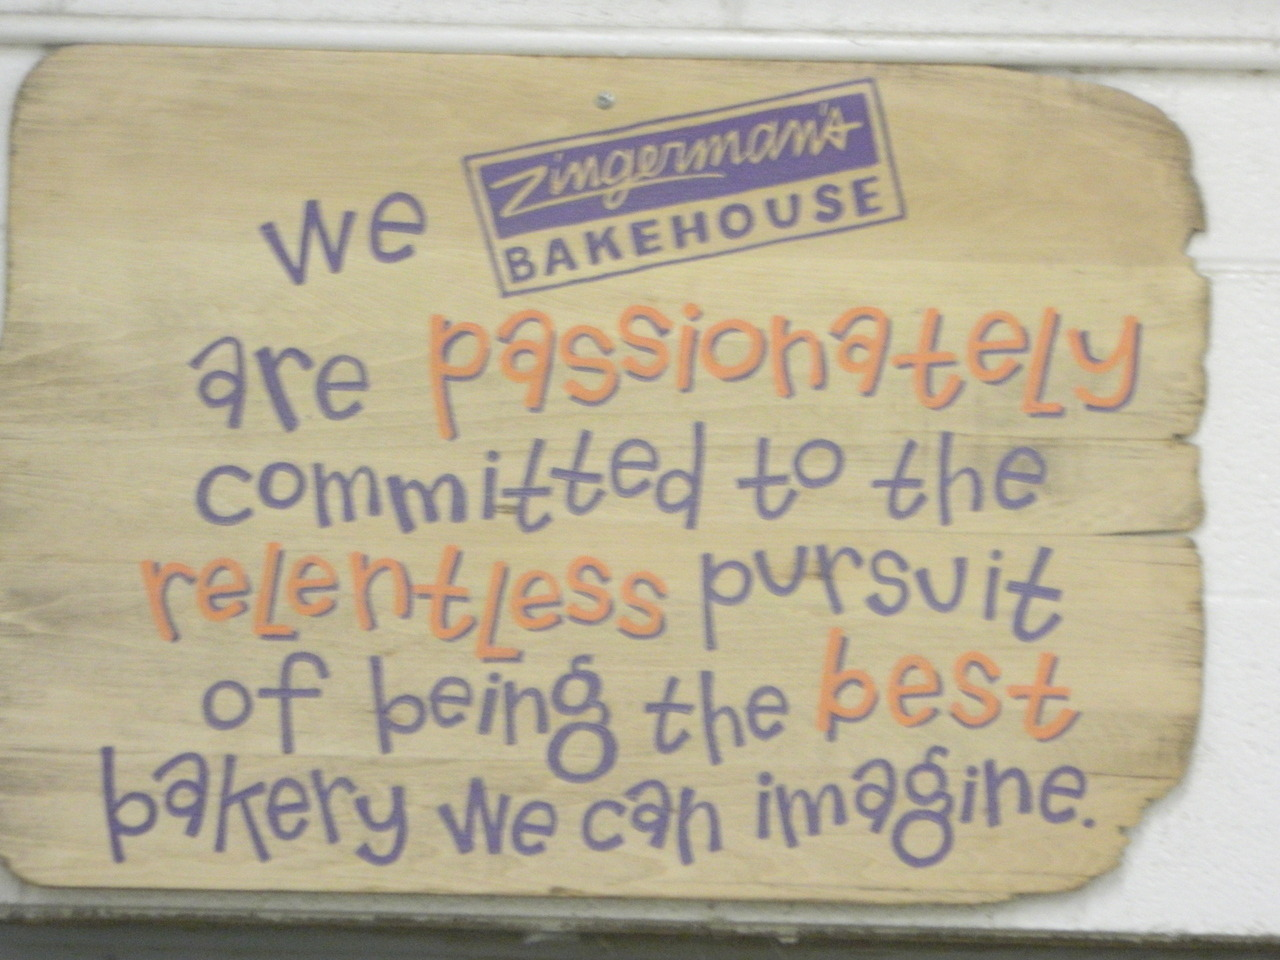 Zingerman's Bakehouse Mission Statement Source: The Chef and the Writer Blog